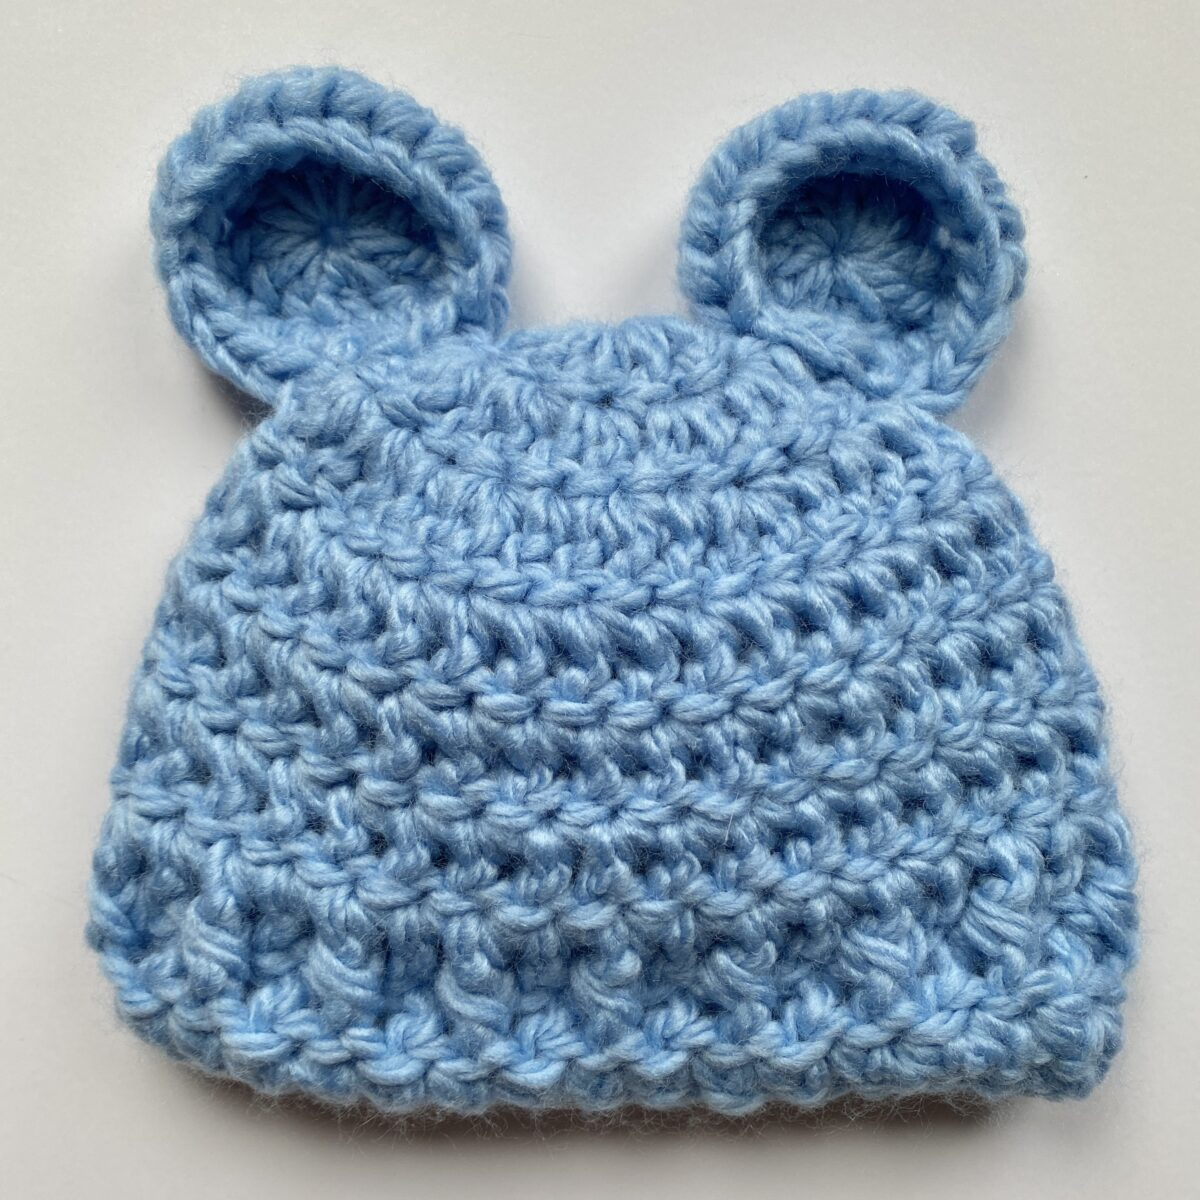 How to Crochet a Baby Beanie with Bear Ears